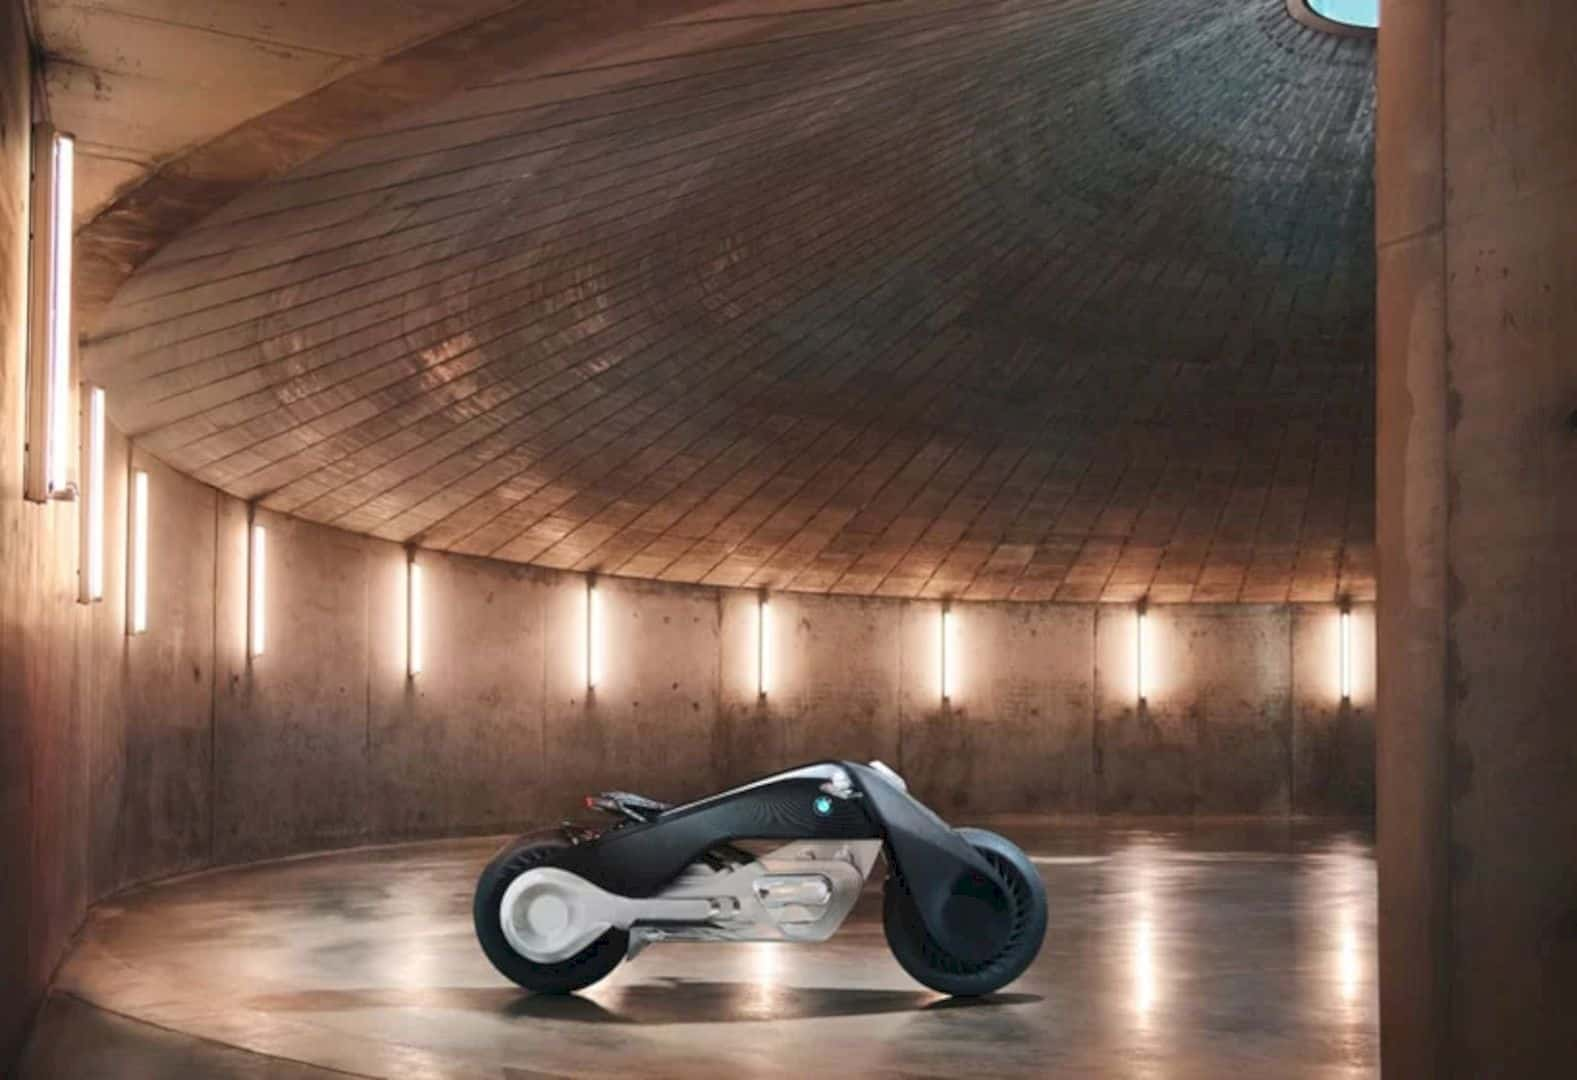 The Bmw Vision Next 100 Concept Motorcycle 6